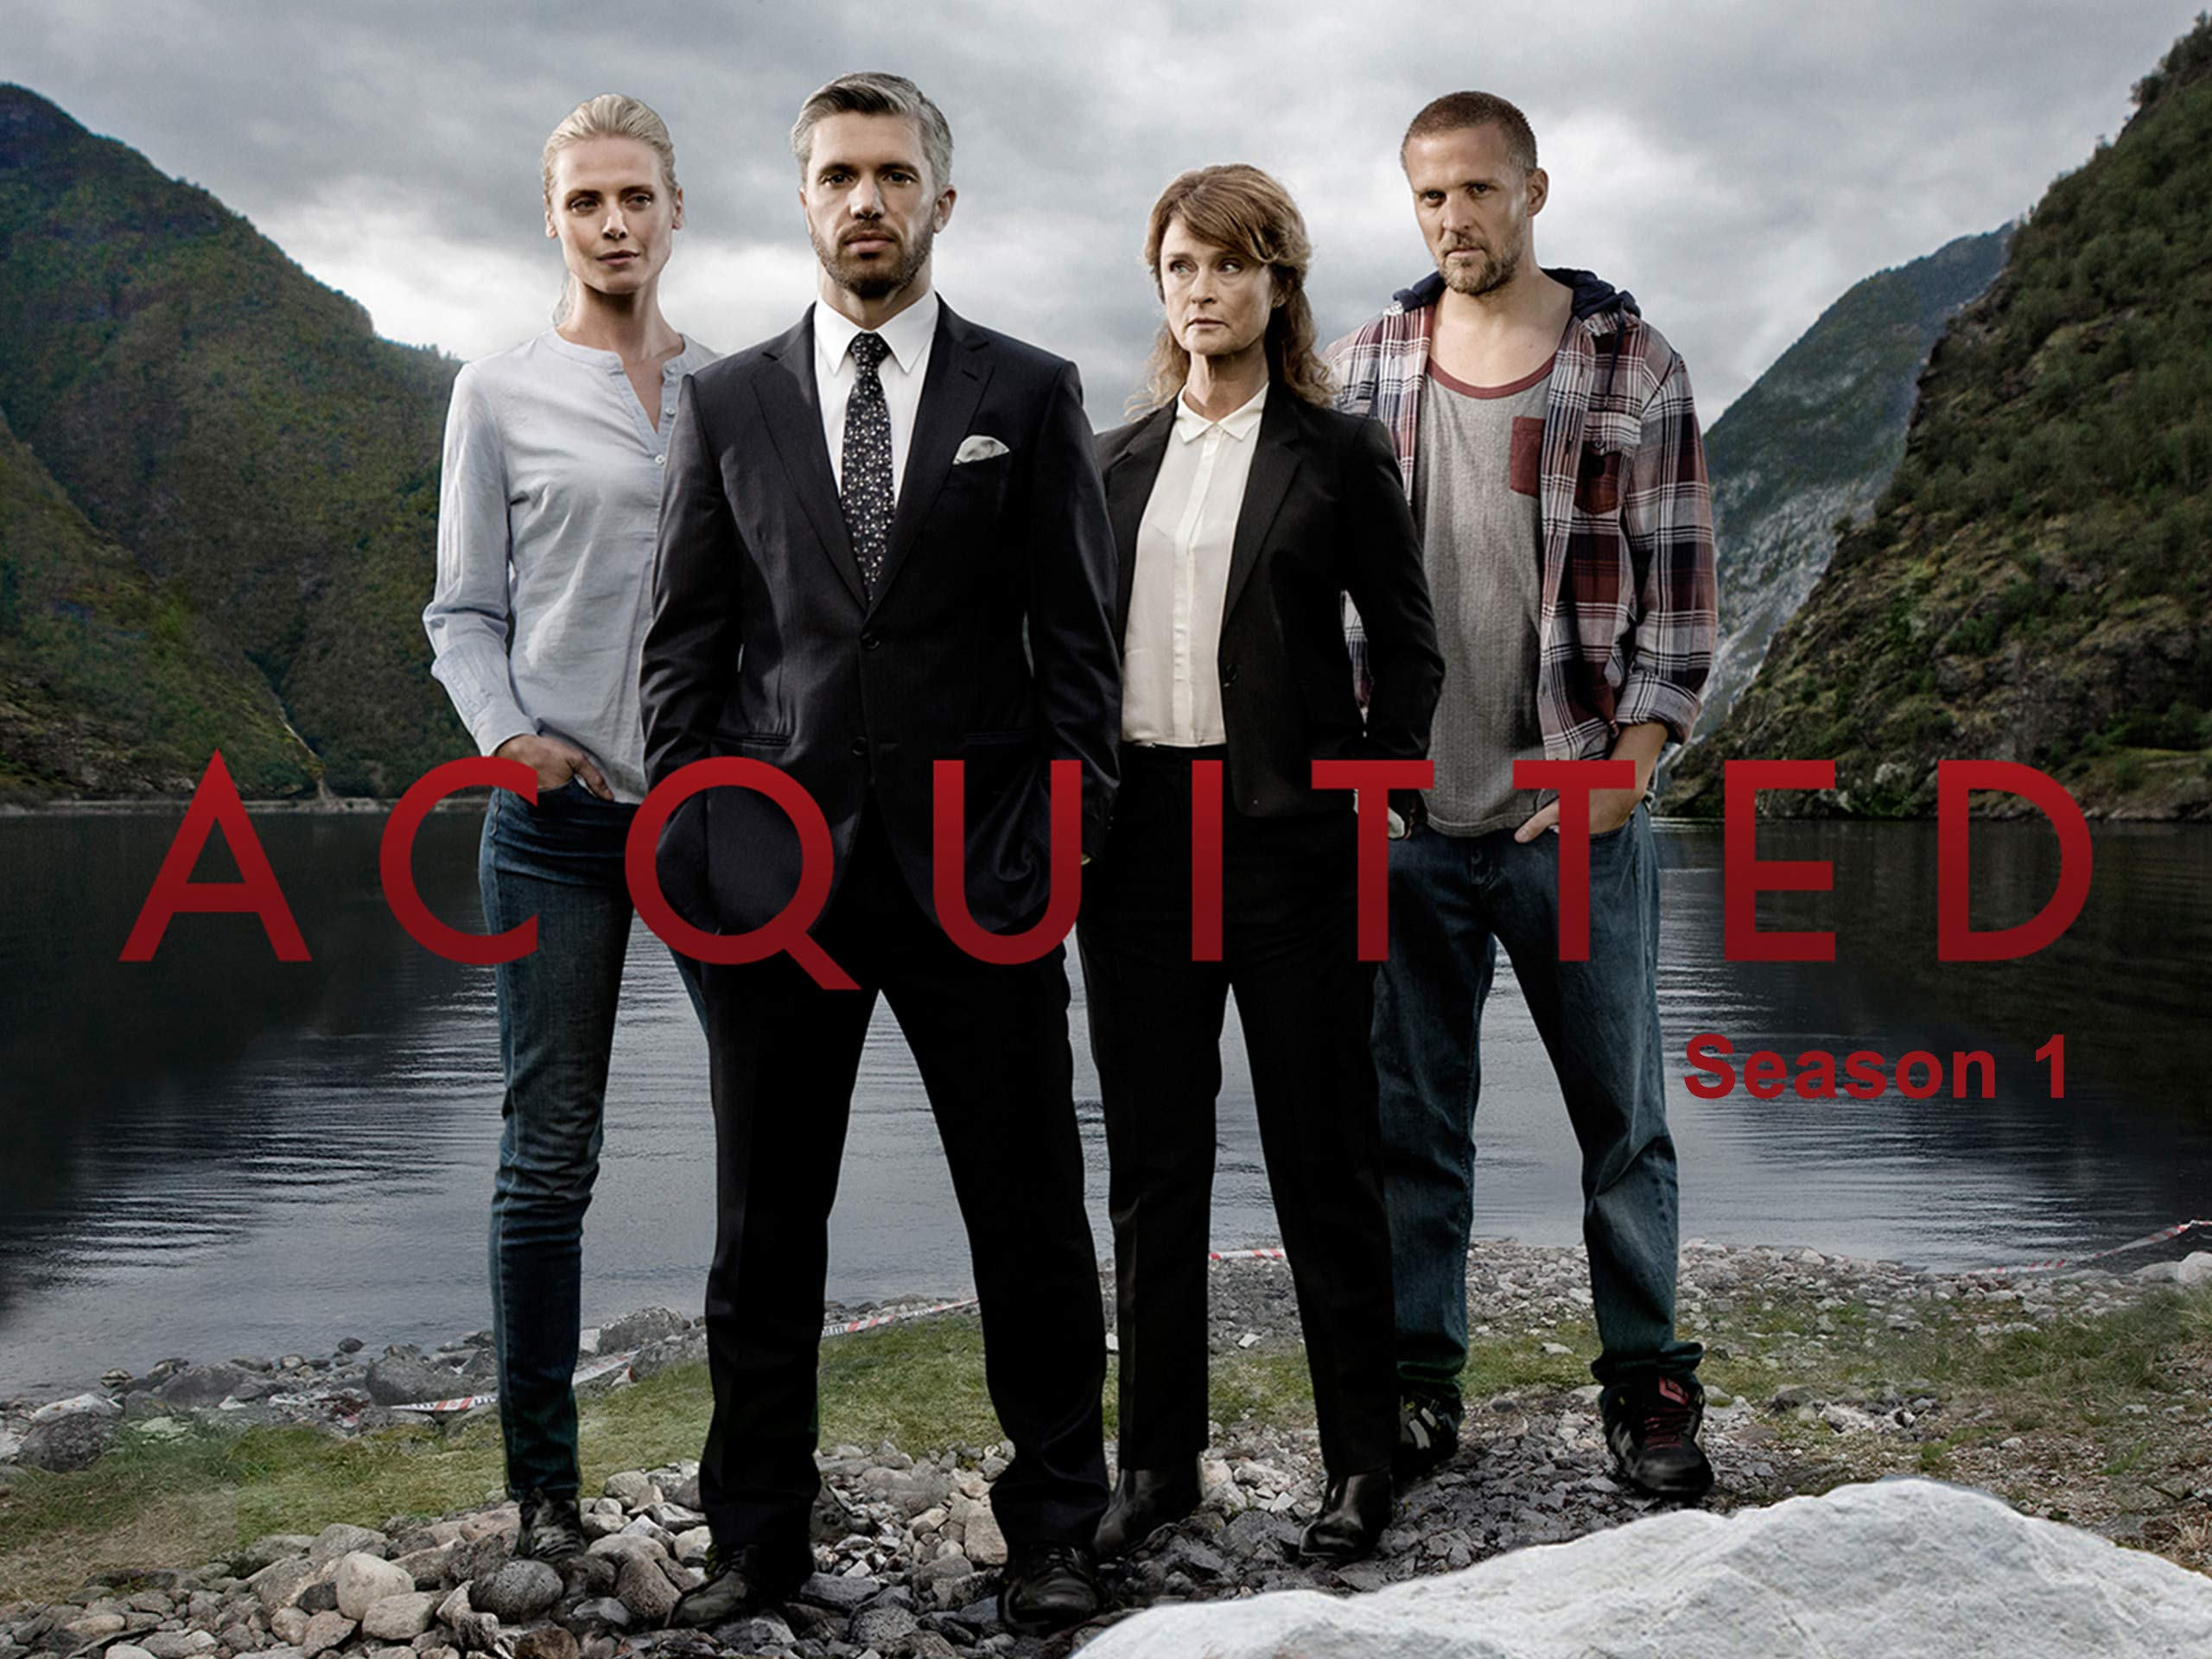 Acquitted - Season 1